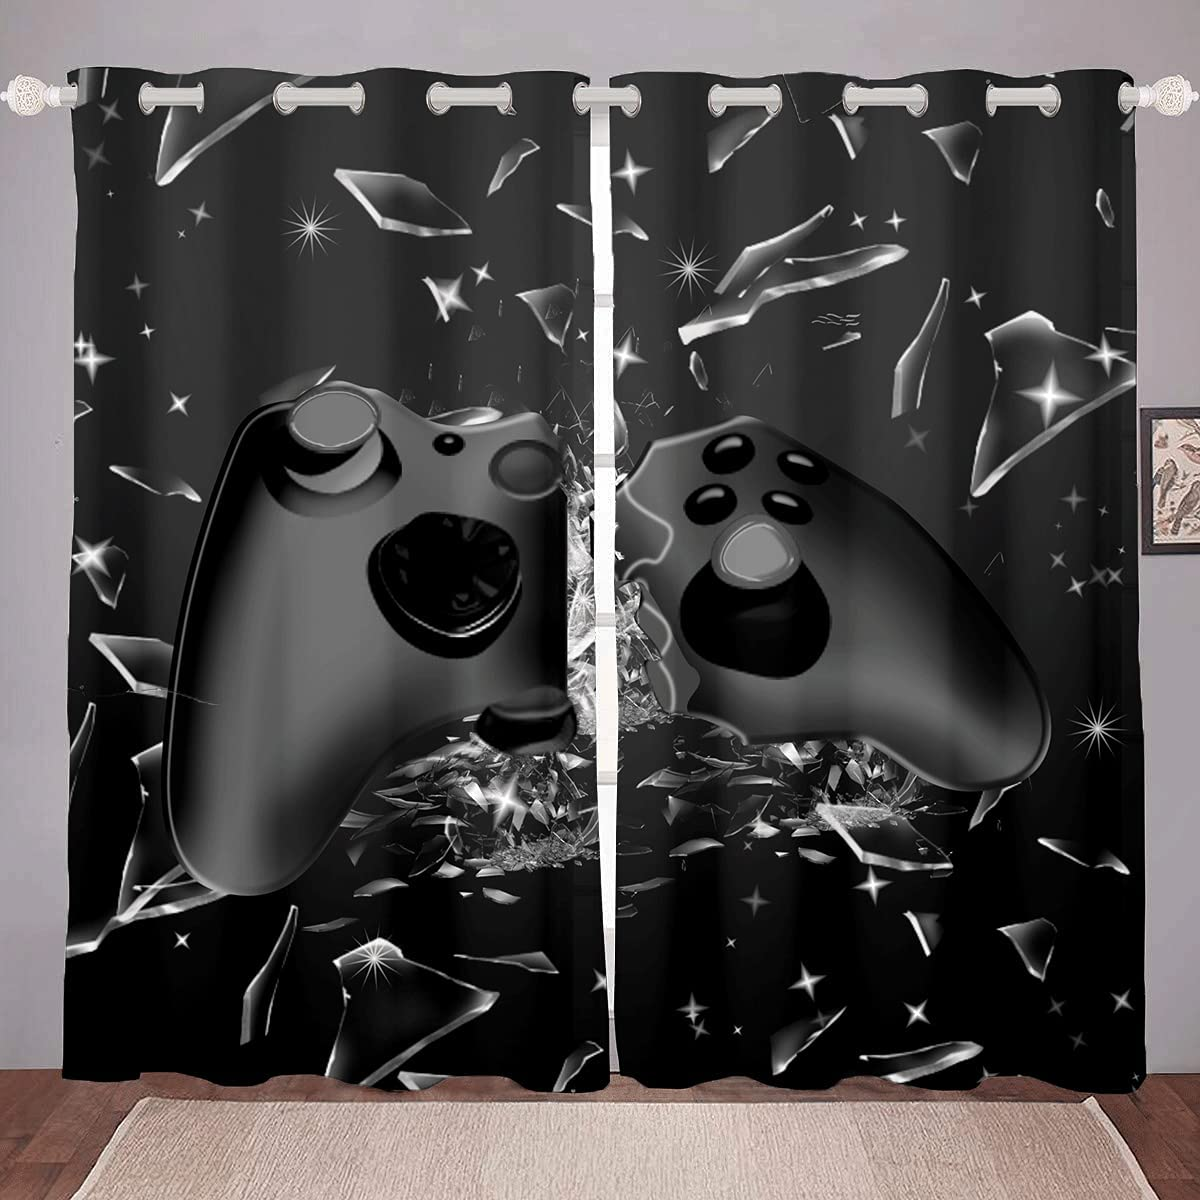 Gamer Curtains Boys Gaming Decor Window Curtains for Bedroom Cool Games Gamepad Window Drapes Game Room Decor - Thermal Insulated Room Curtains for Living Room, 2 Window Curtain Panels